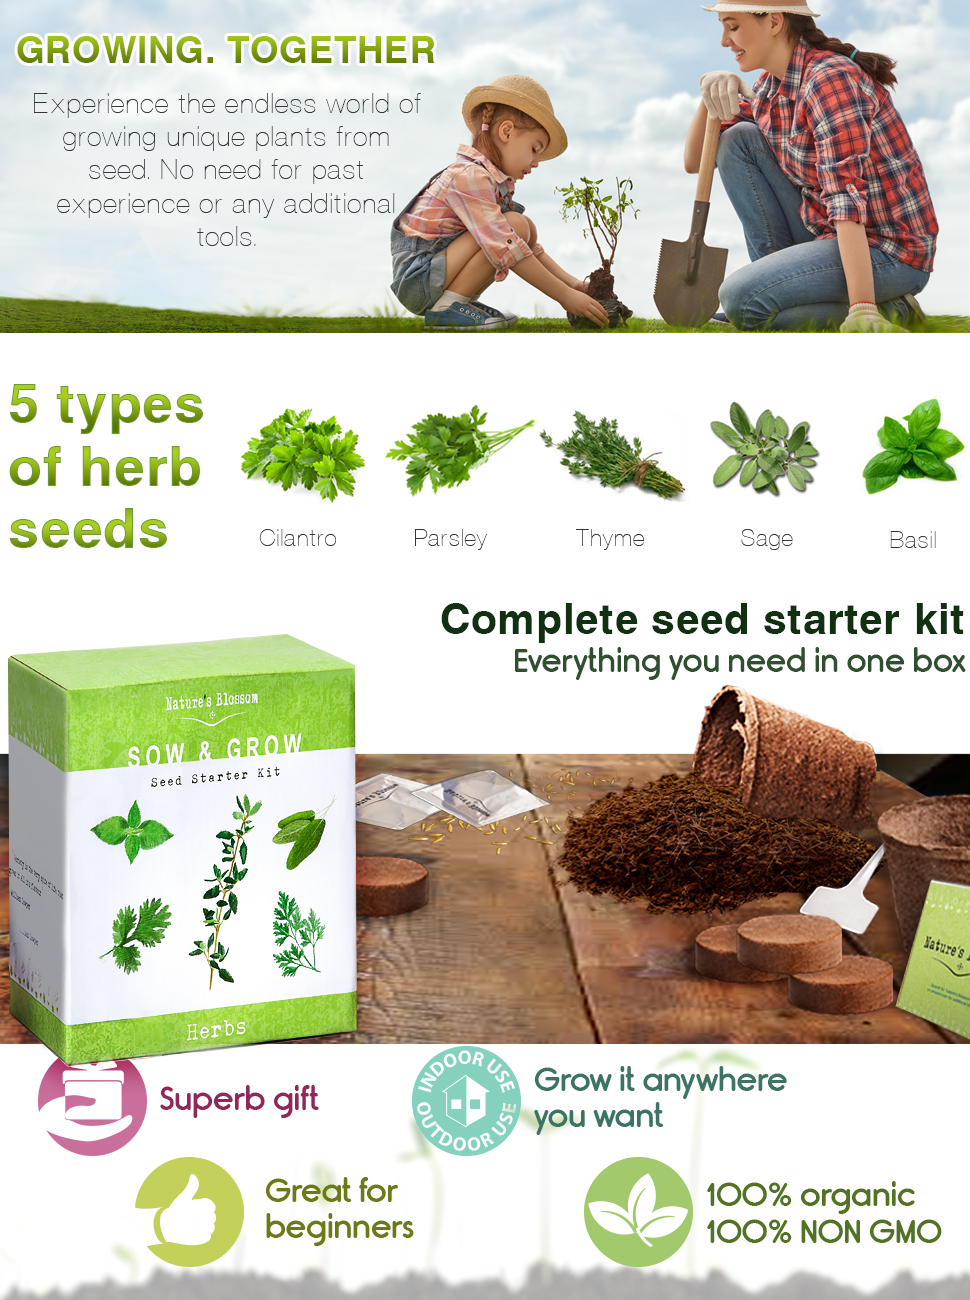 Amazoncom Grow 5 Herbs From Organic Seeds with Natures